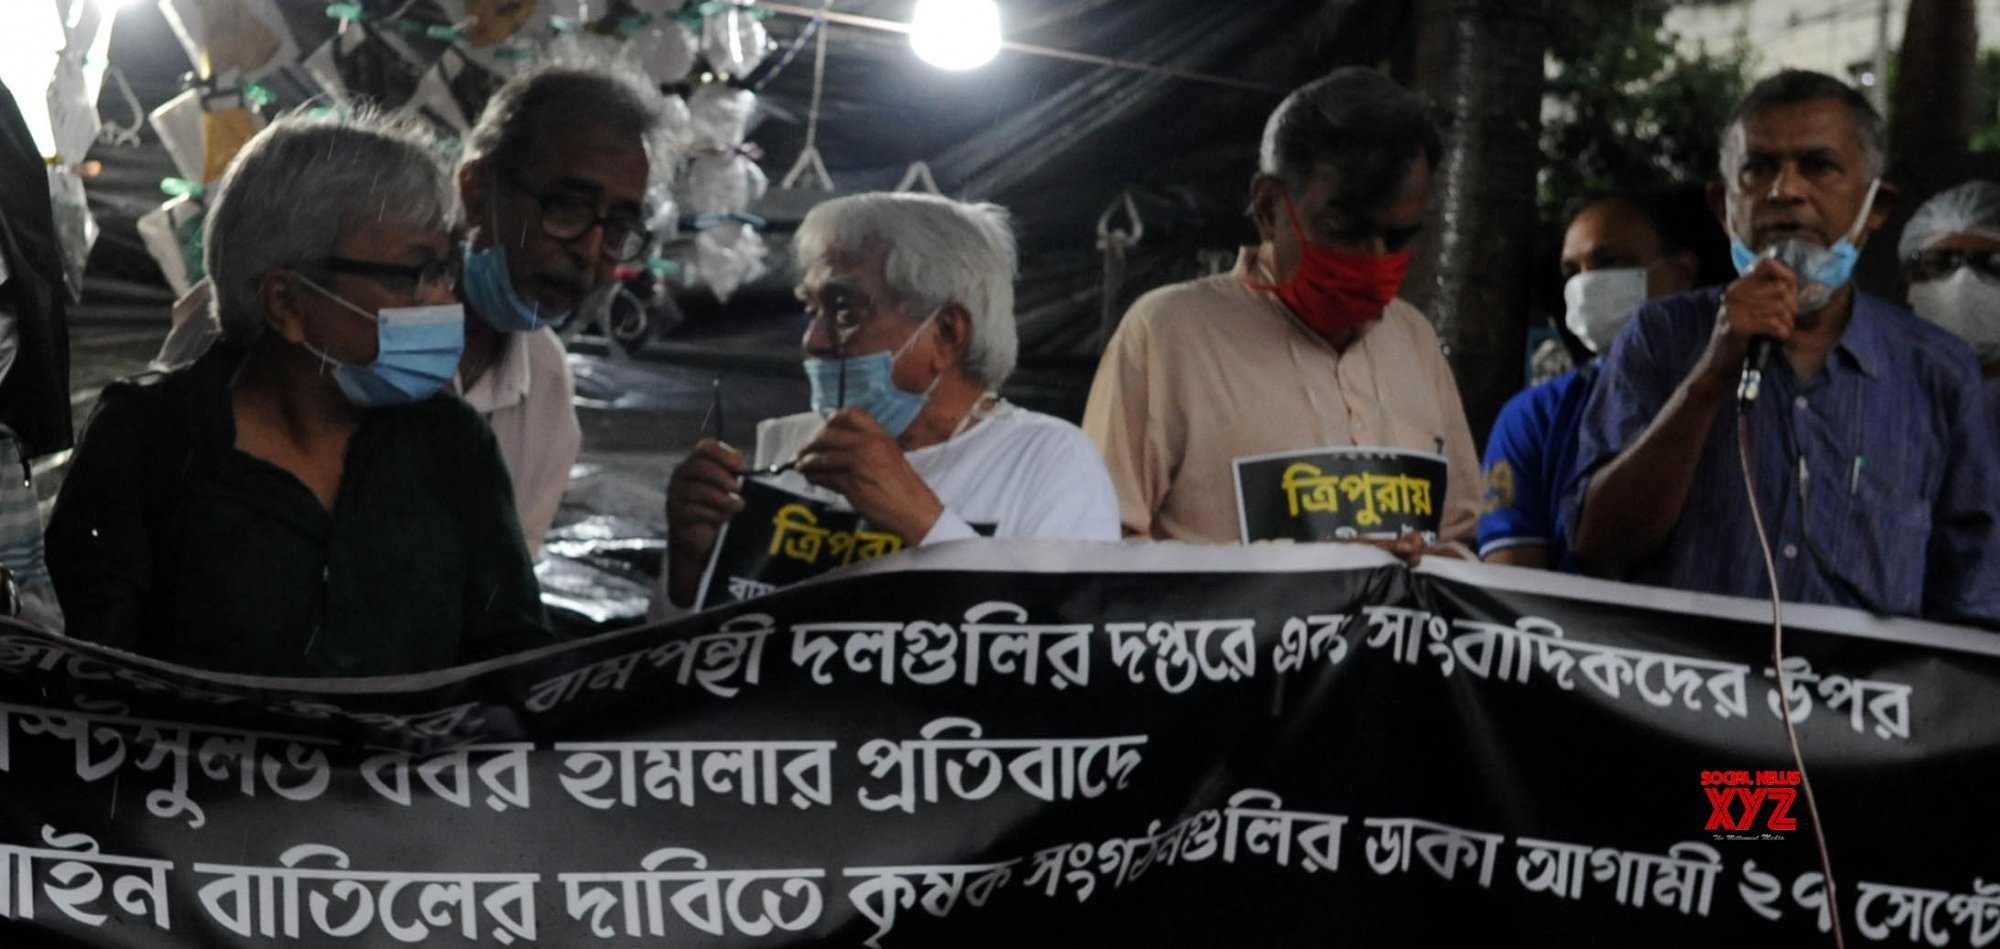 Kolkata: Left Front chairman Biman Bose along with Left - wing party Leaders and activists stage protest against the attack on CPU (M) Tripura in Kolkata. #Gallery